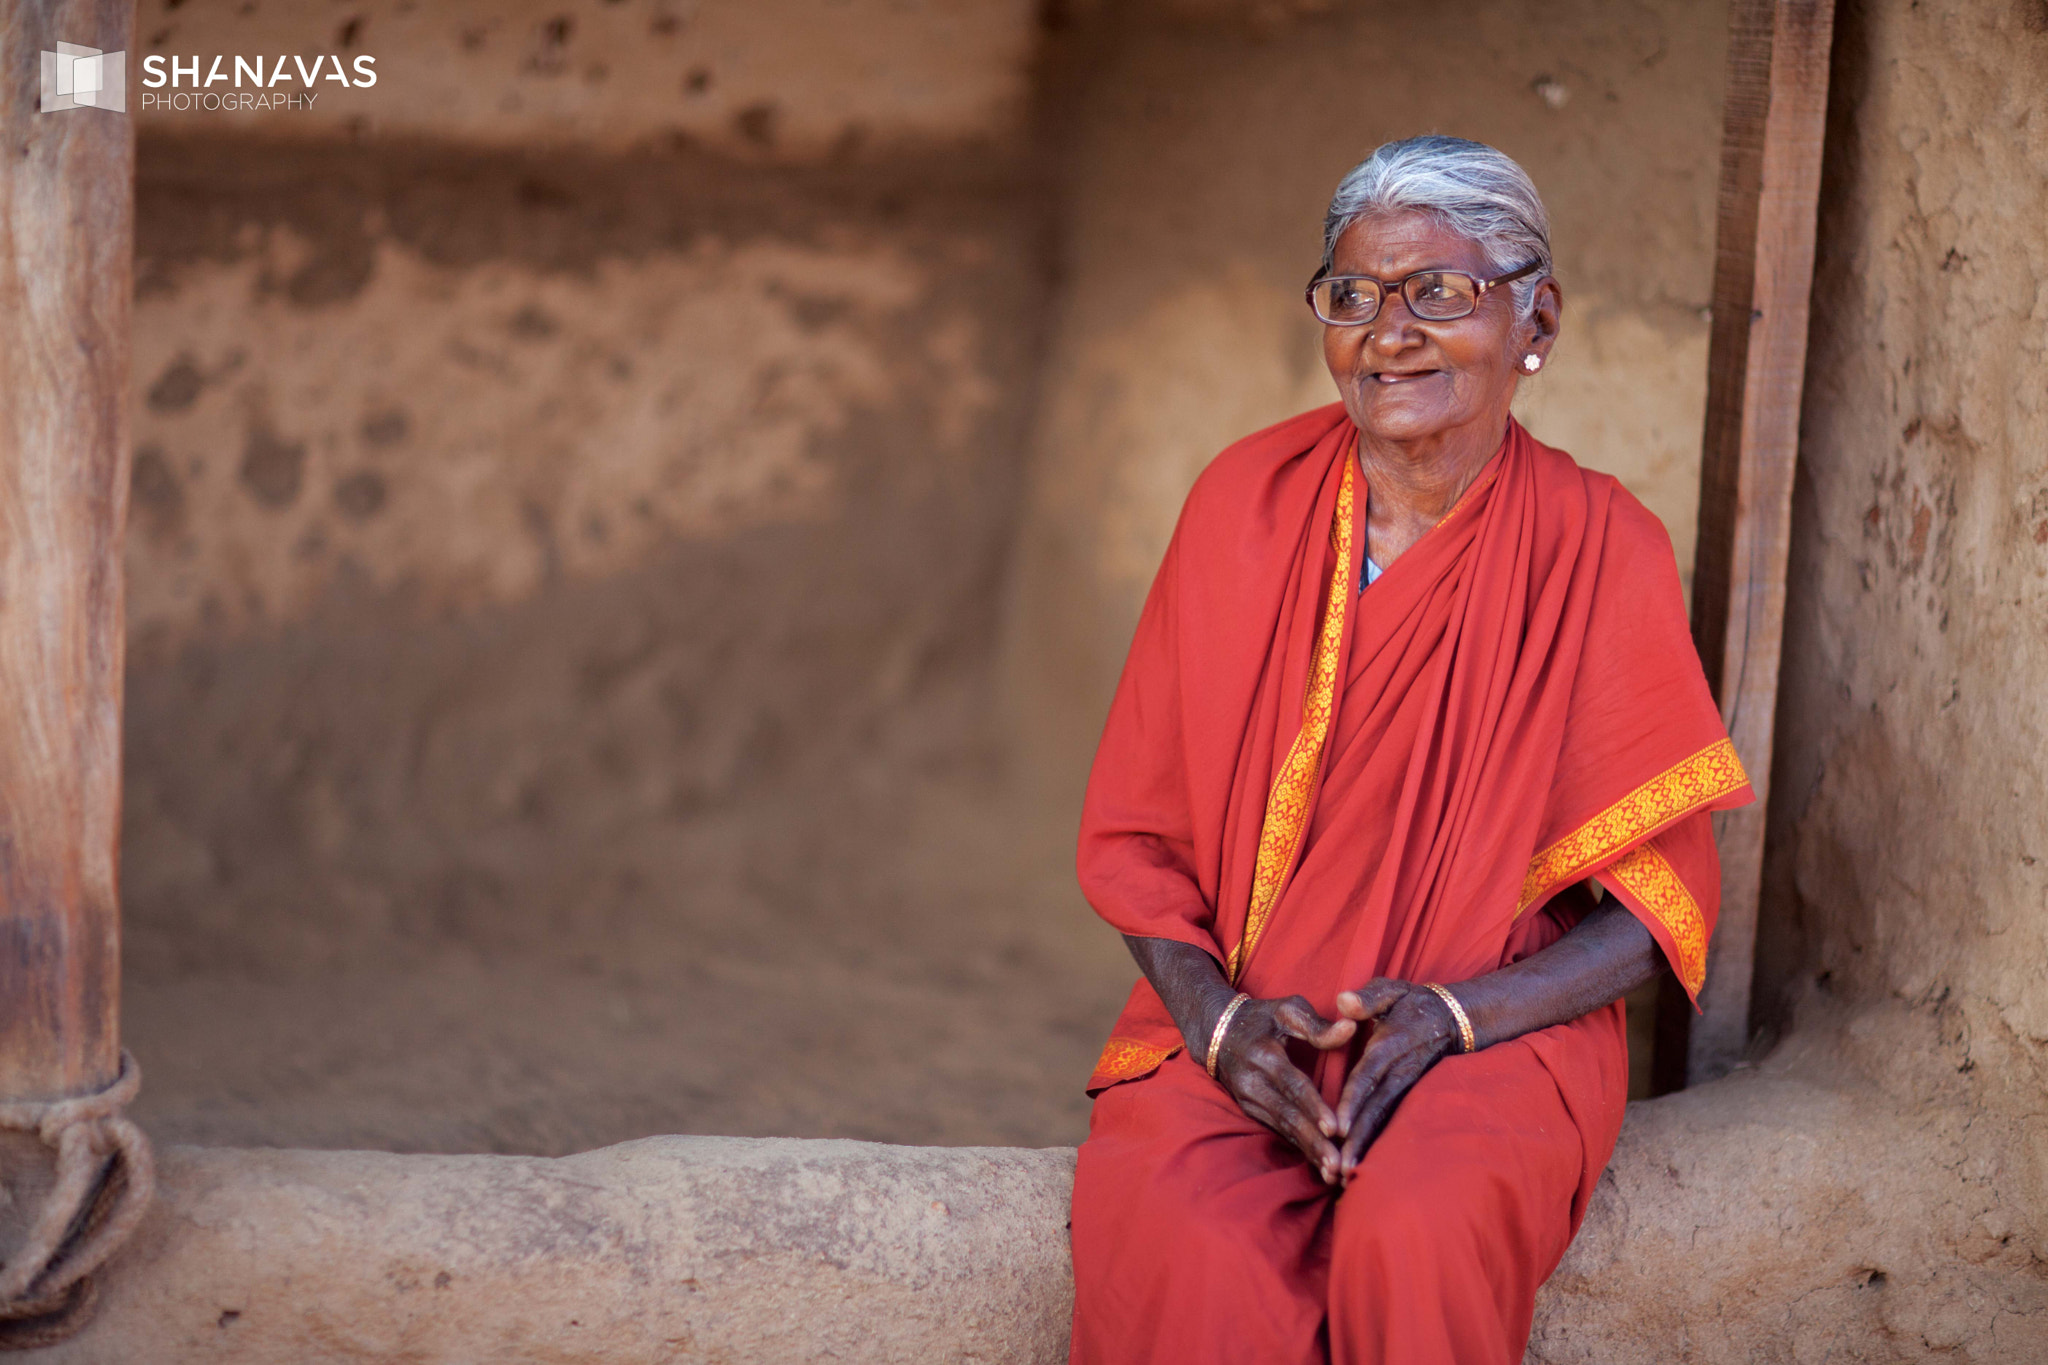 Photograph The lady in red by Shanavas PN on 500px